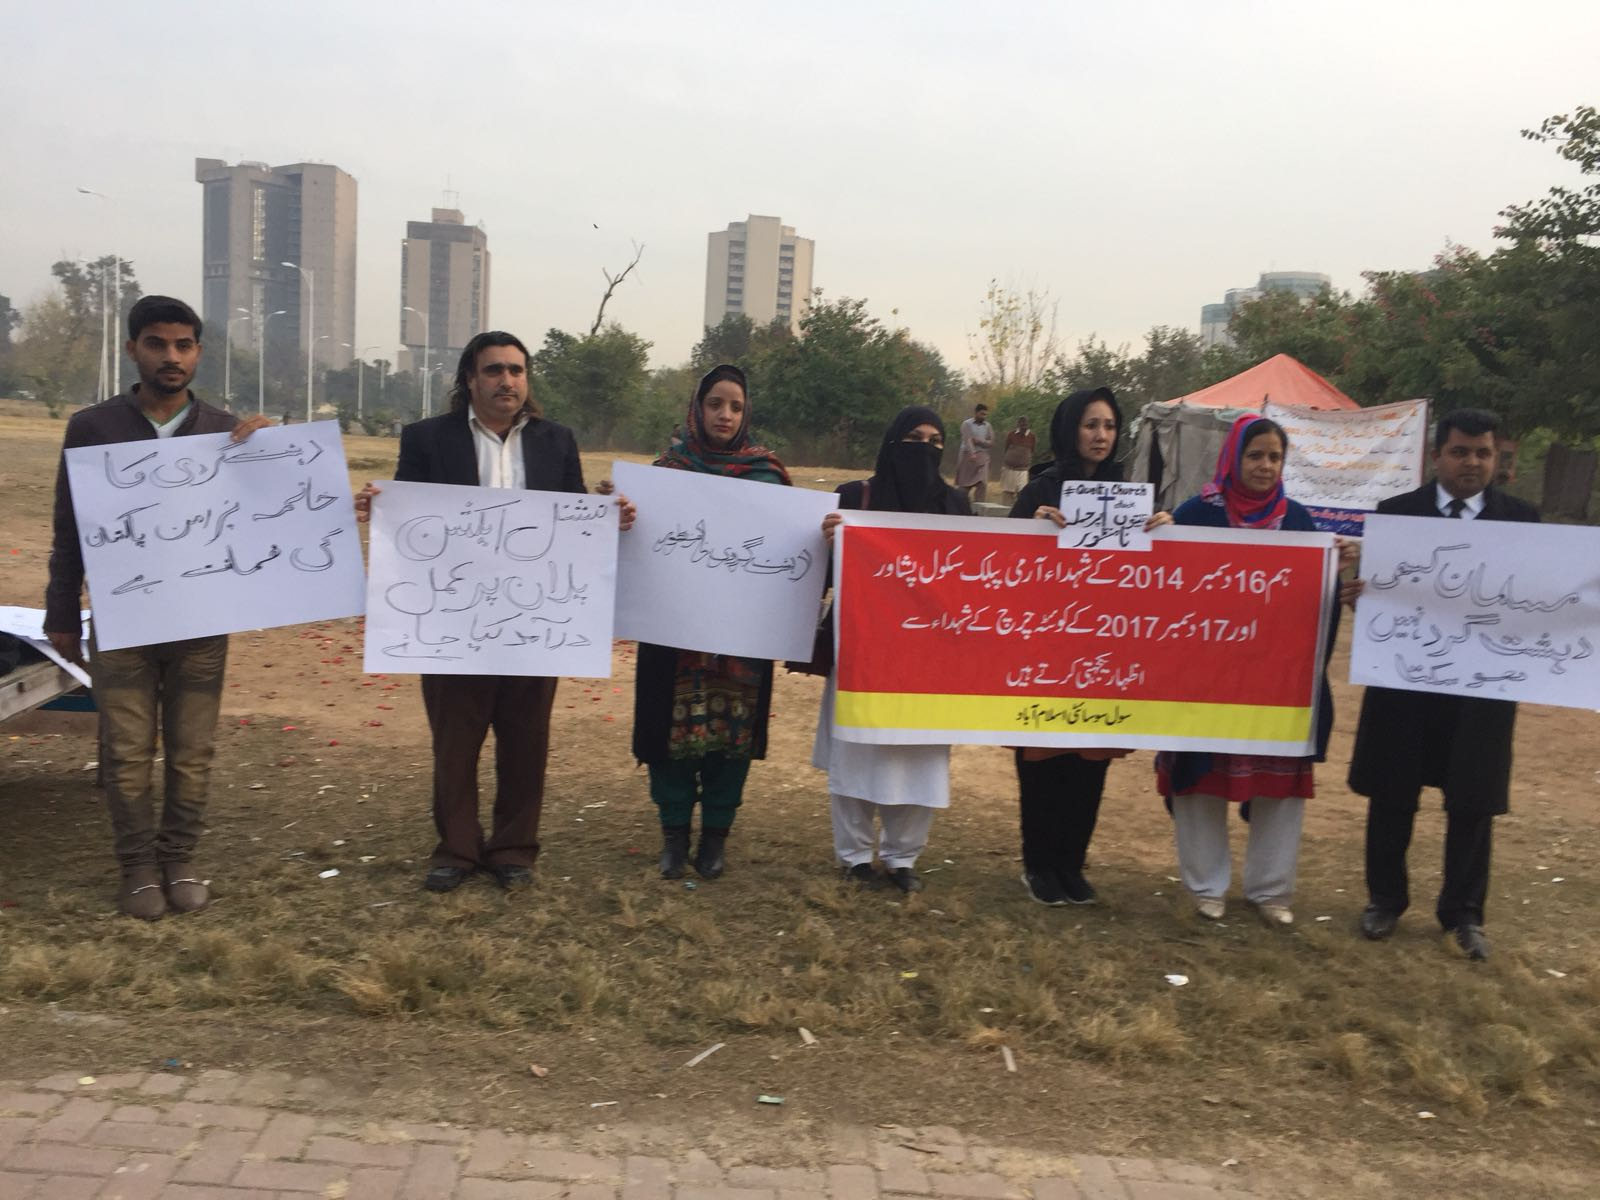 Protest in front of Islamabad's Press Club against terrorism in Pakistan